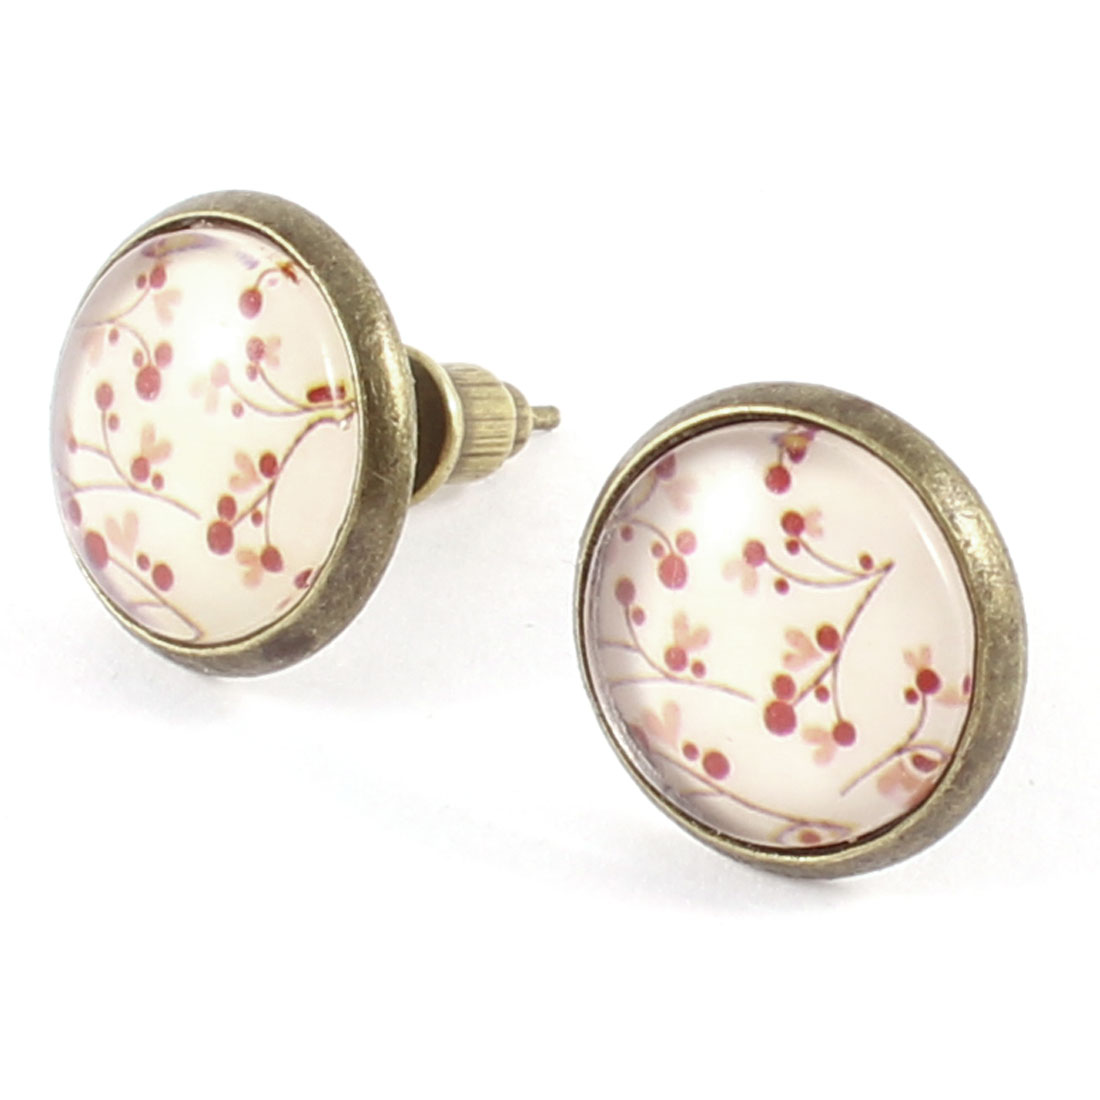 Ladies Pair Flower Print Round Shape Stud Earrings Bronze Tone